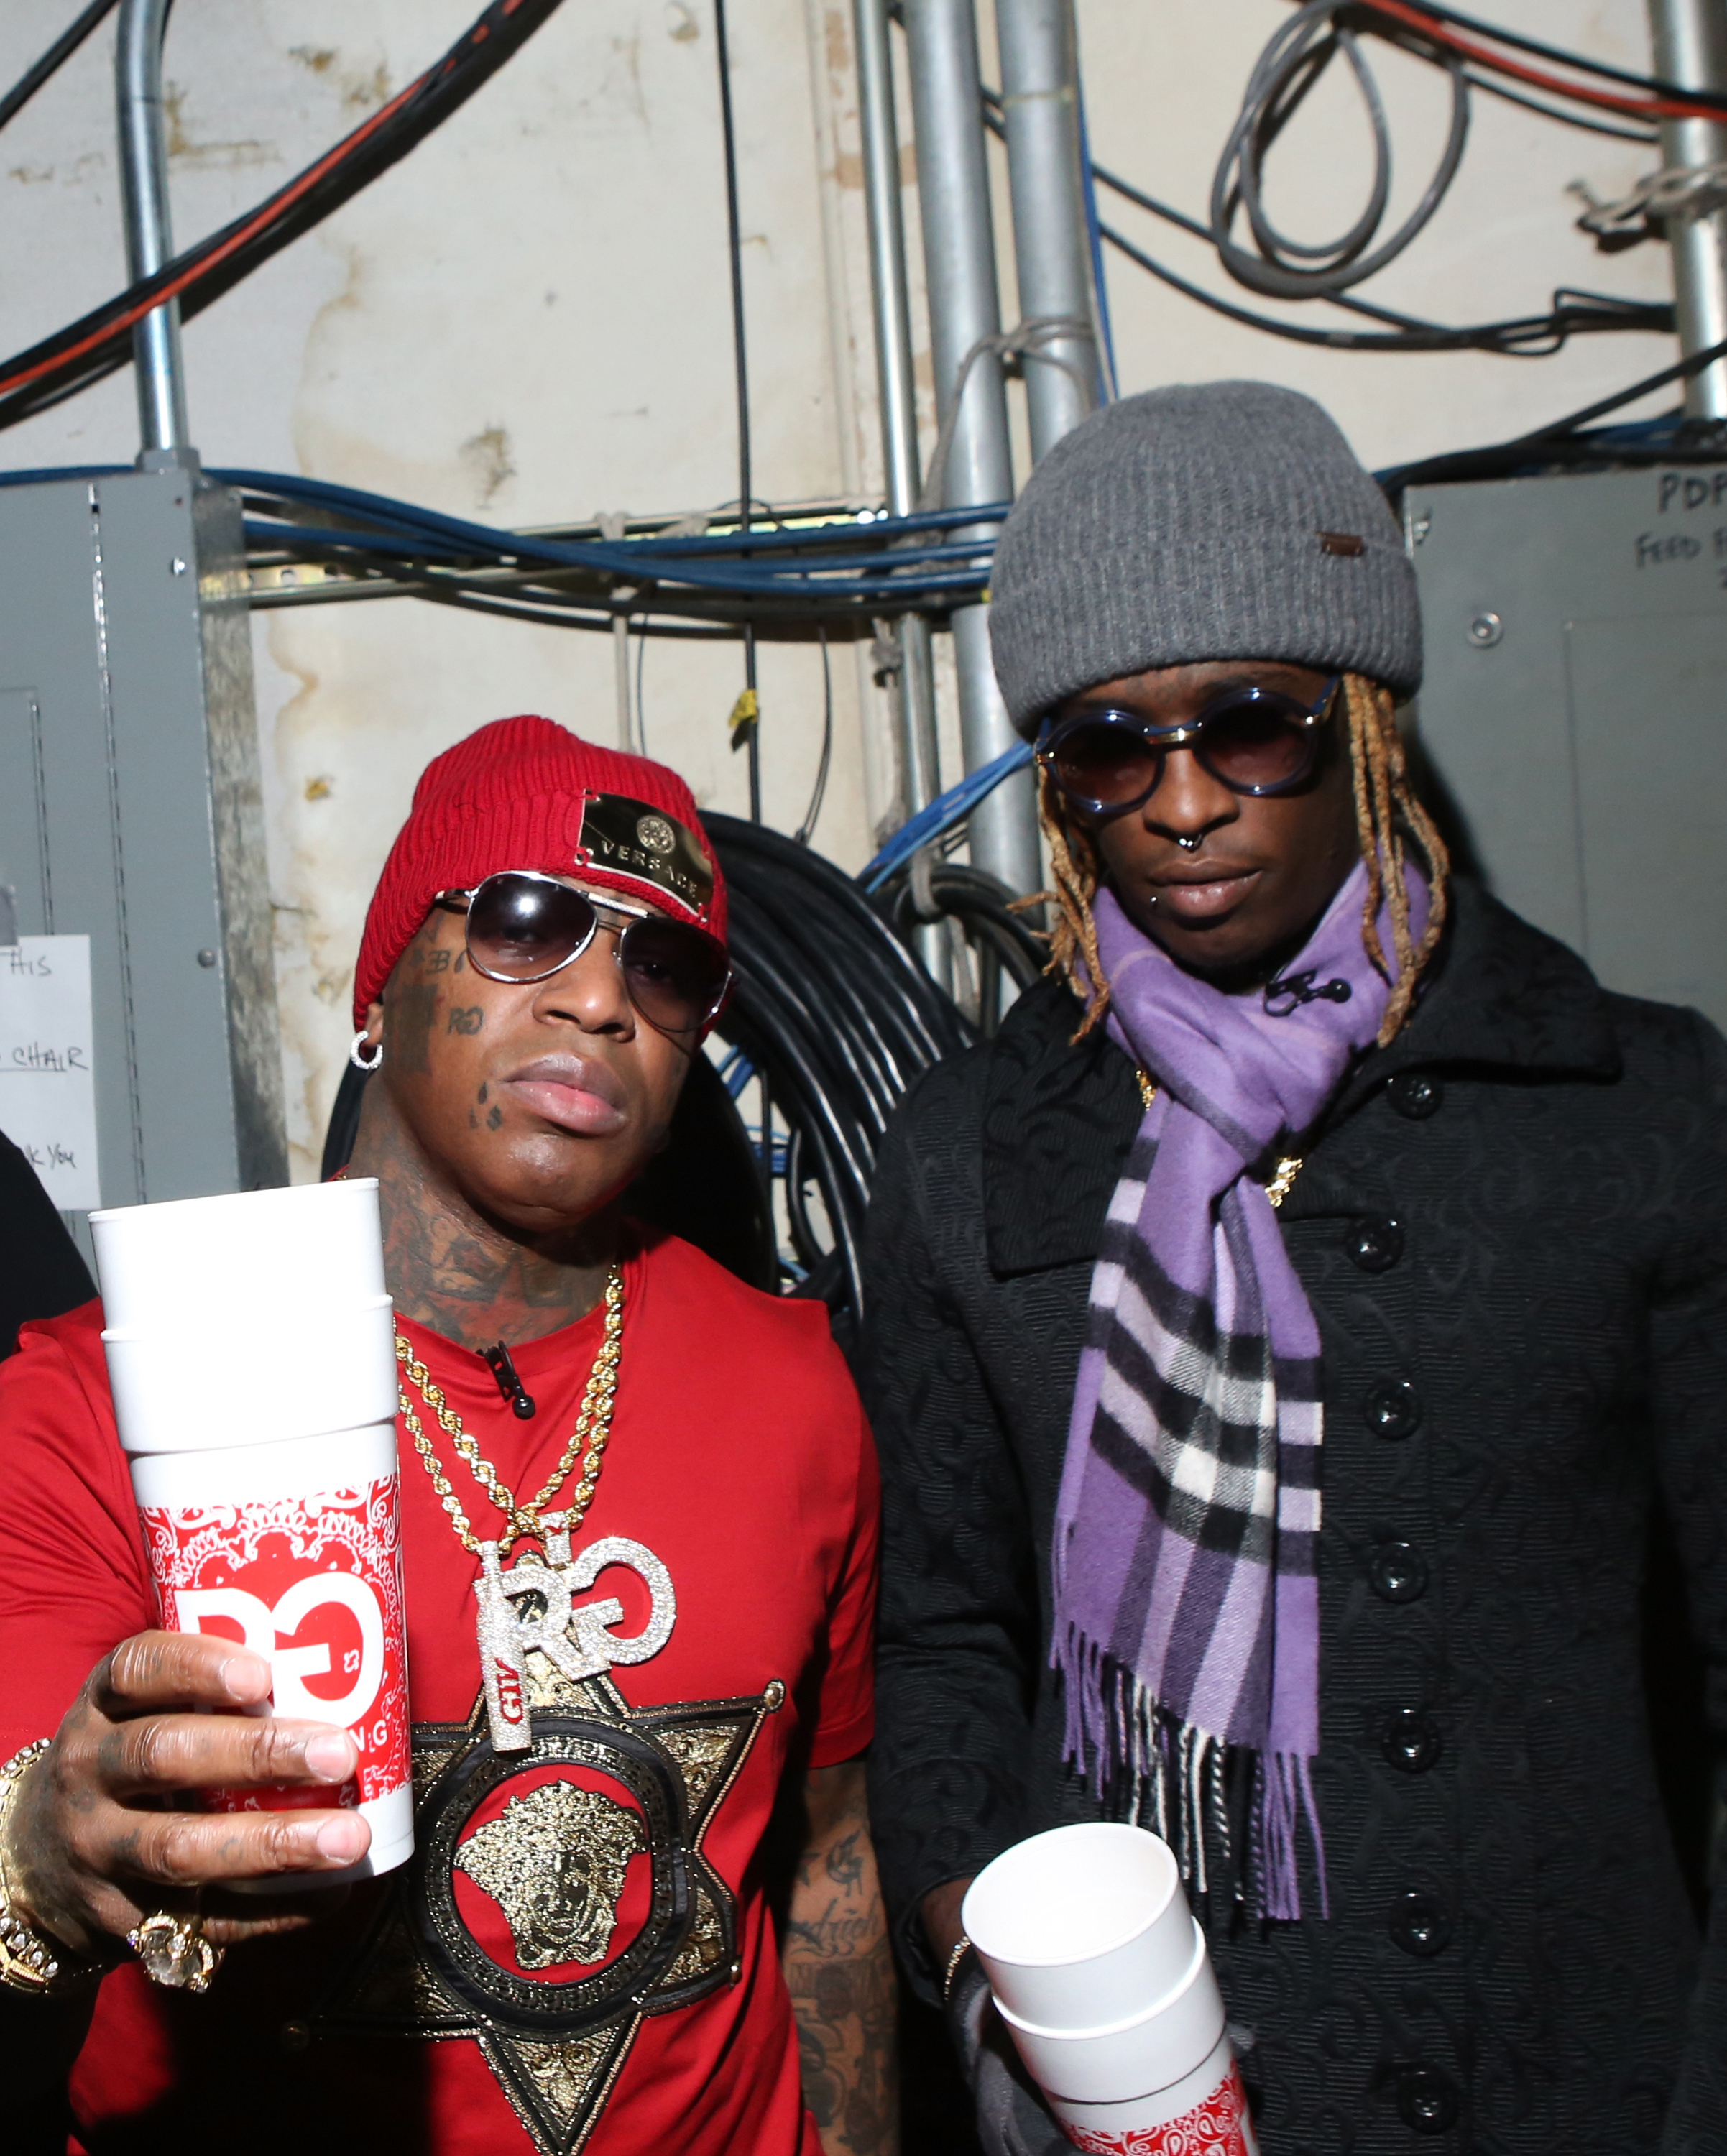 Birdman, Young Thug Named in Lil Wayne Shooting Indictment